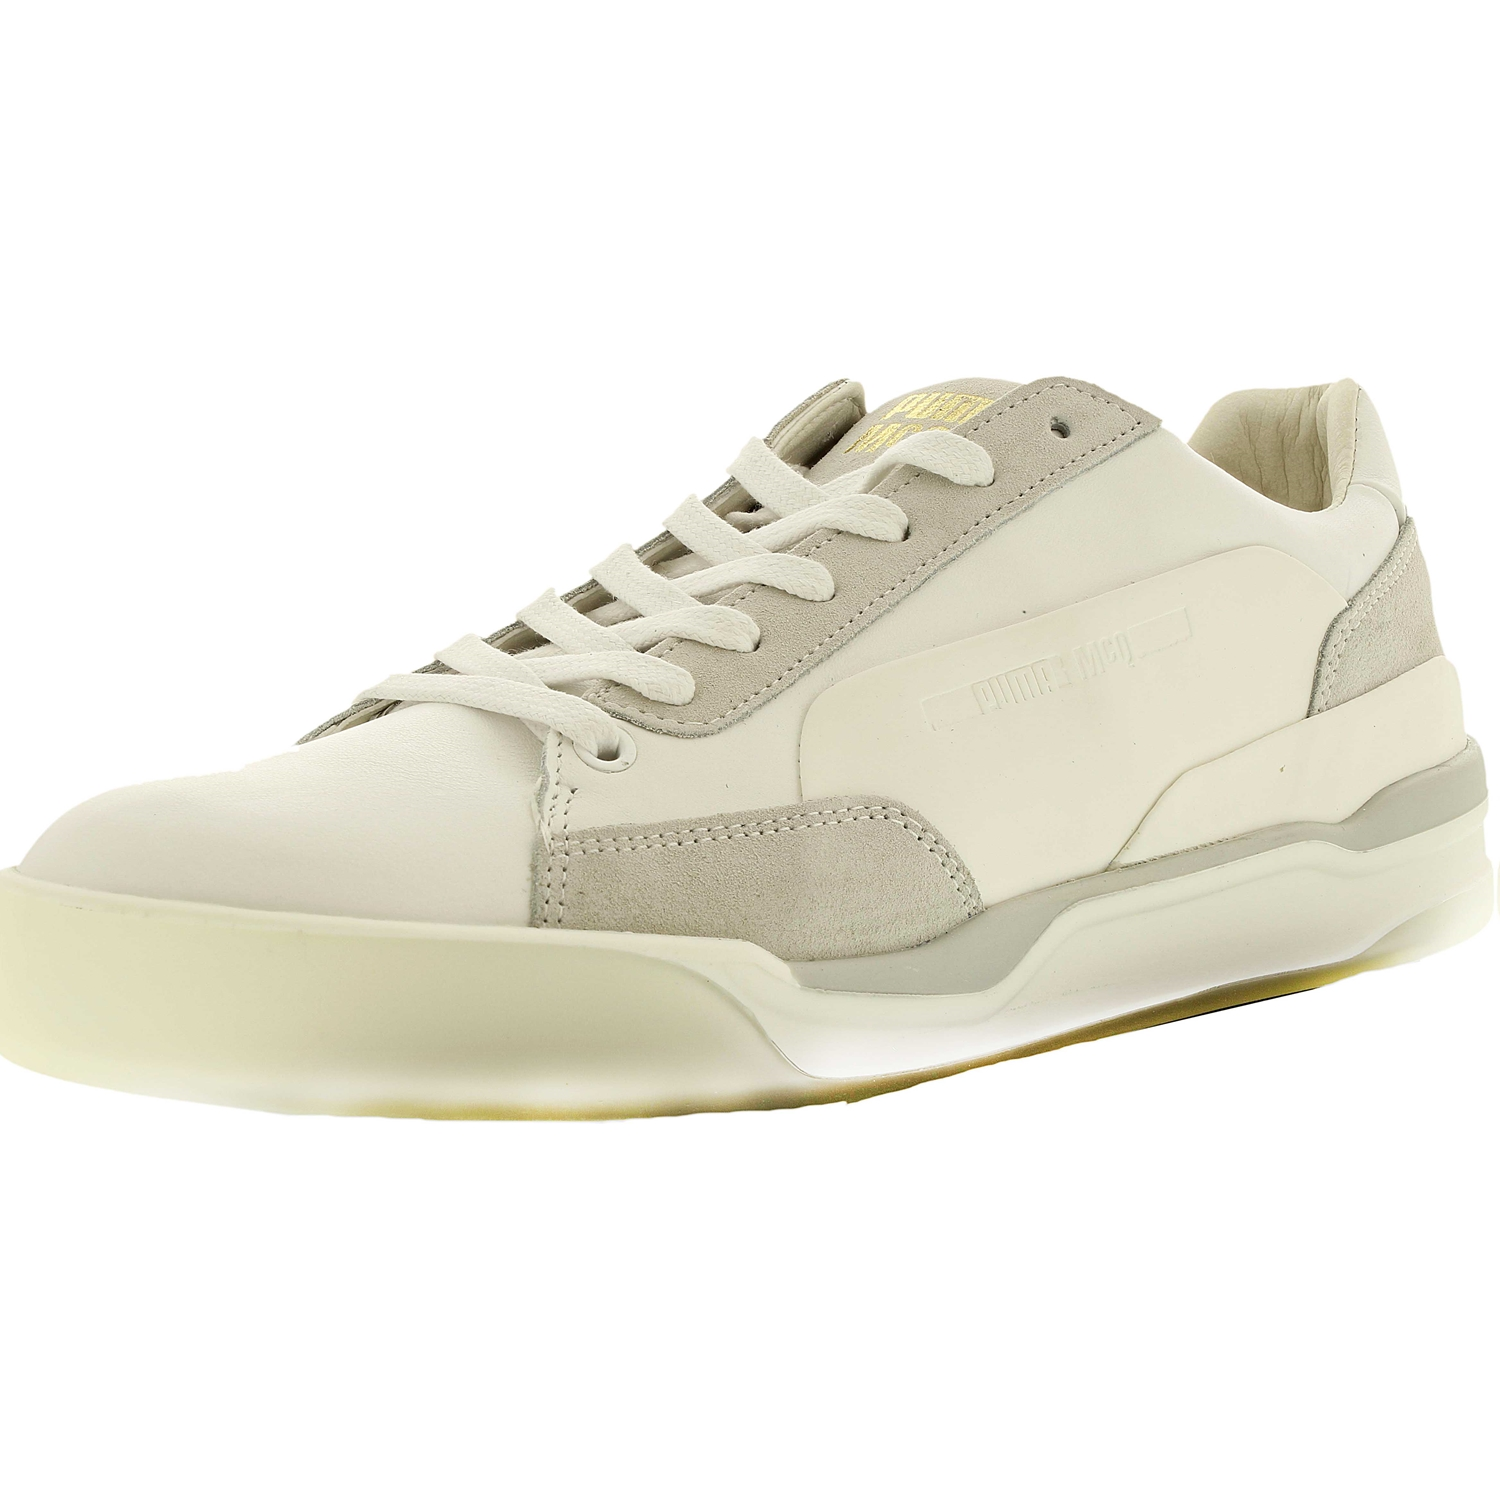 Puma Men's Mcq Move Lo Lace Up White/Puma White/Whisper W...